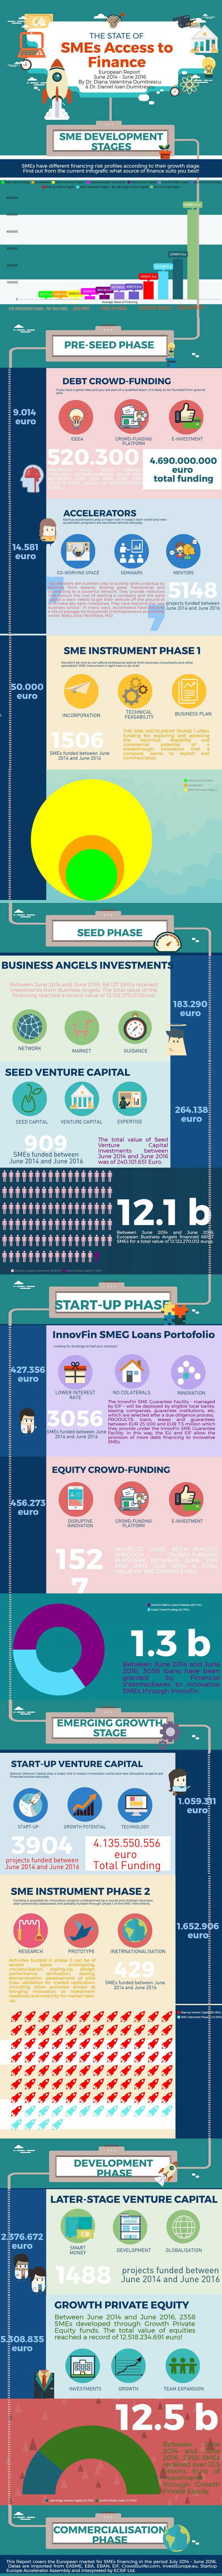 EU finance for SMEs Report